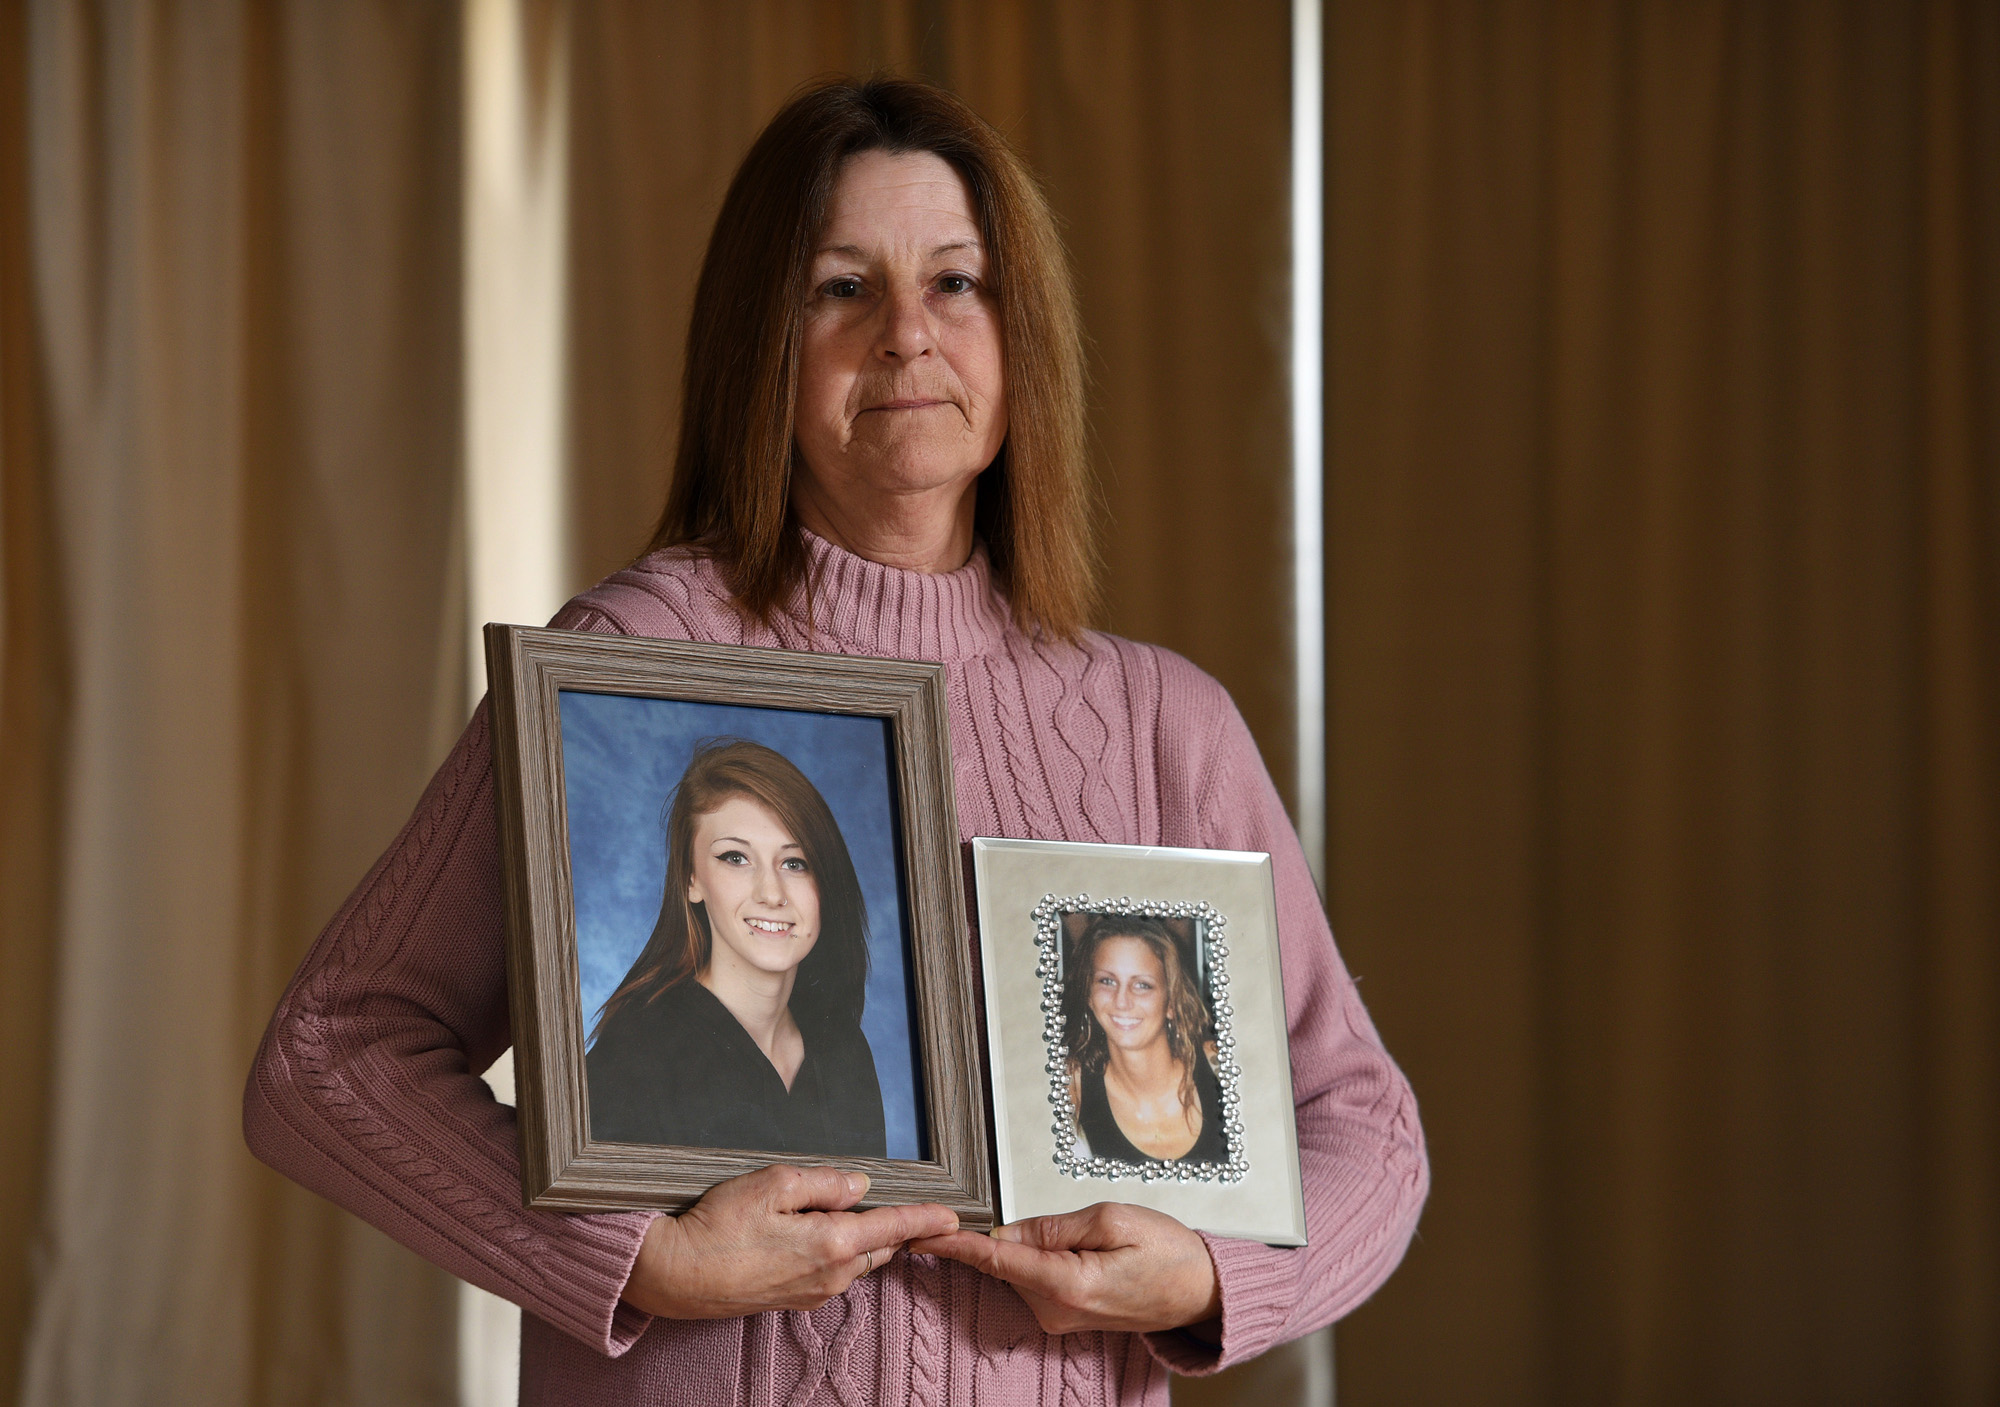 76e3c612dec2f Bonnie Wannamaker lost her daughter Nicole to suicide in 2009 and that sent  Nicole's daughter Alyssa down the wrong path and she died by suicide in  2016.